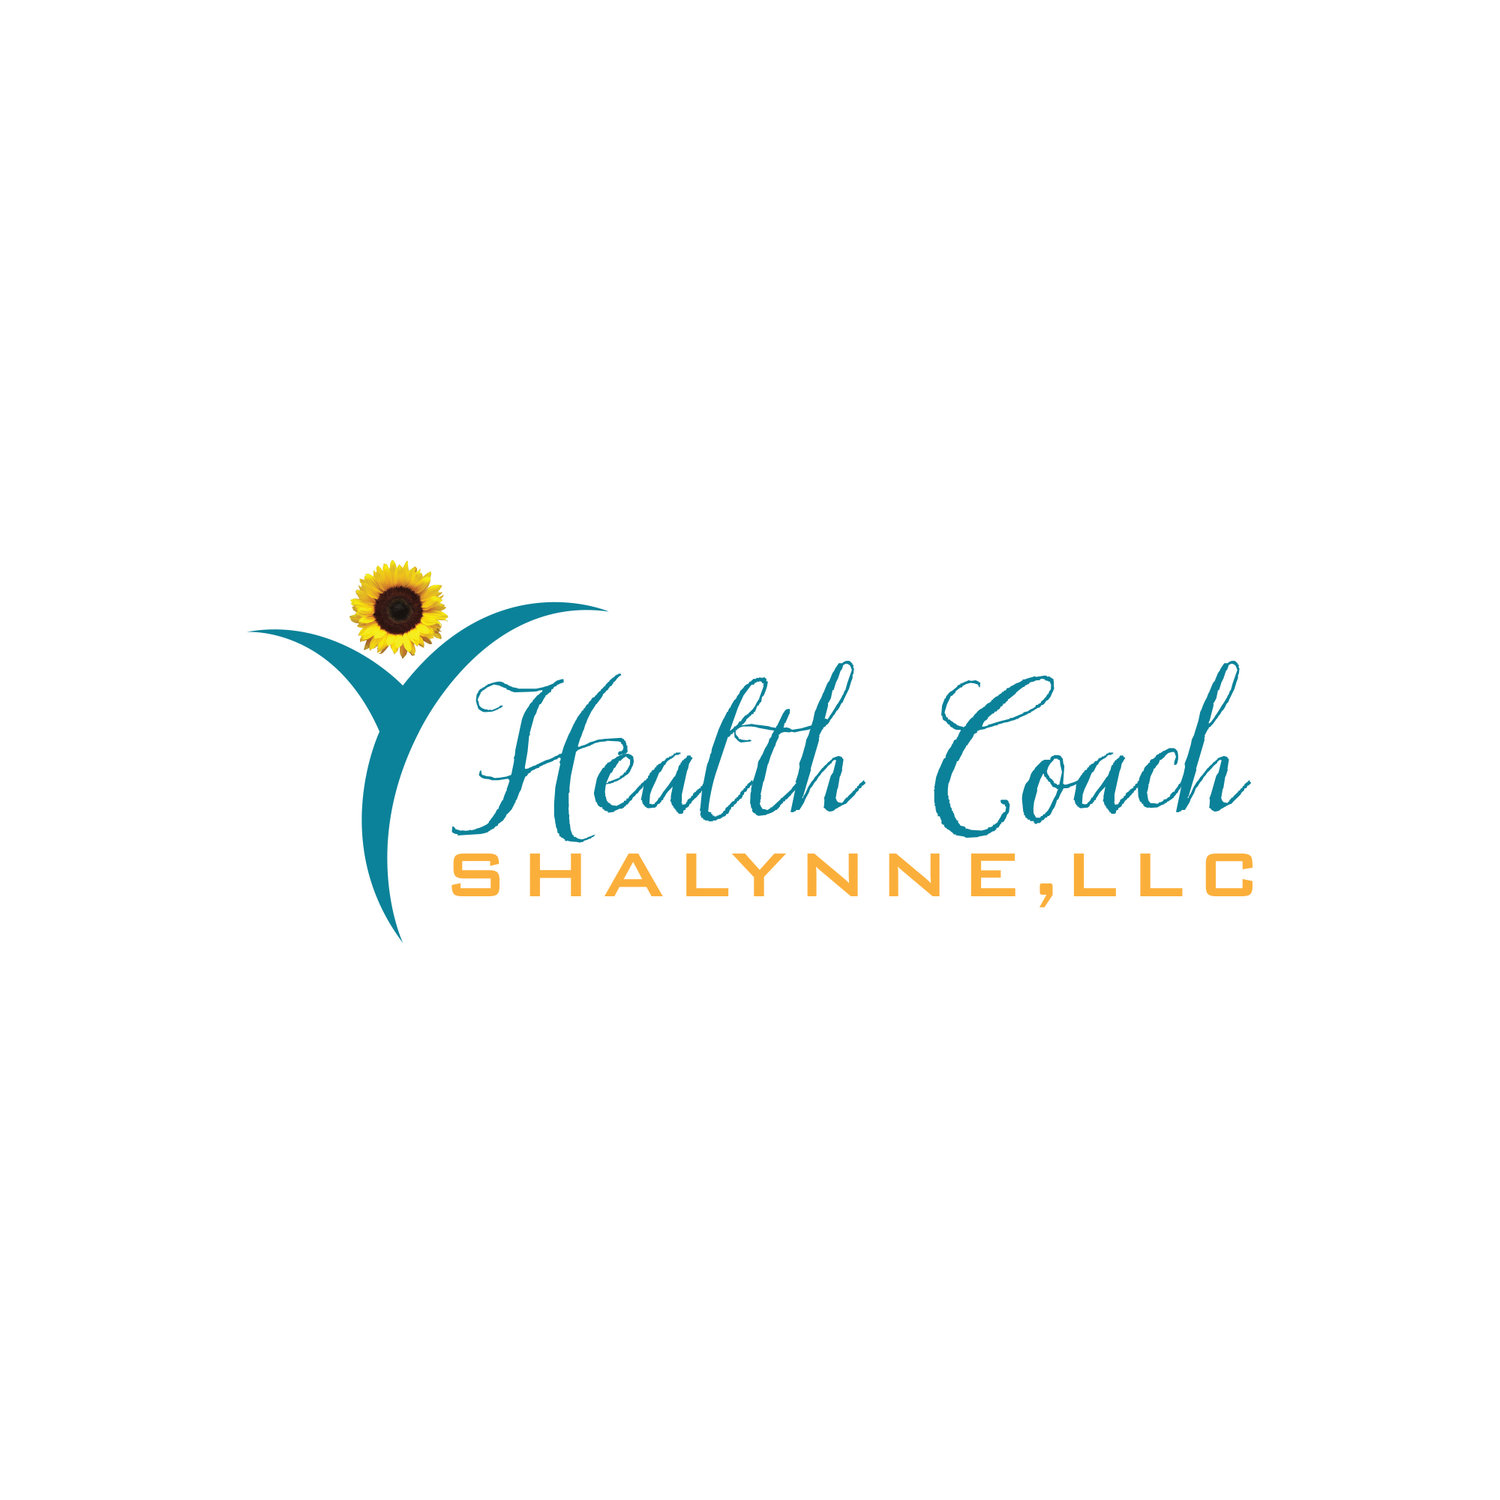 Health Coach Shalynne, LLC